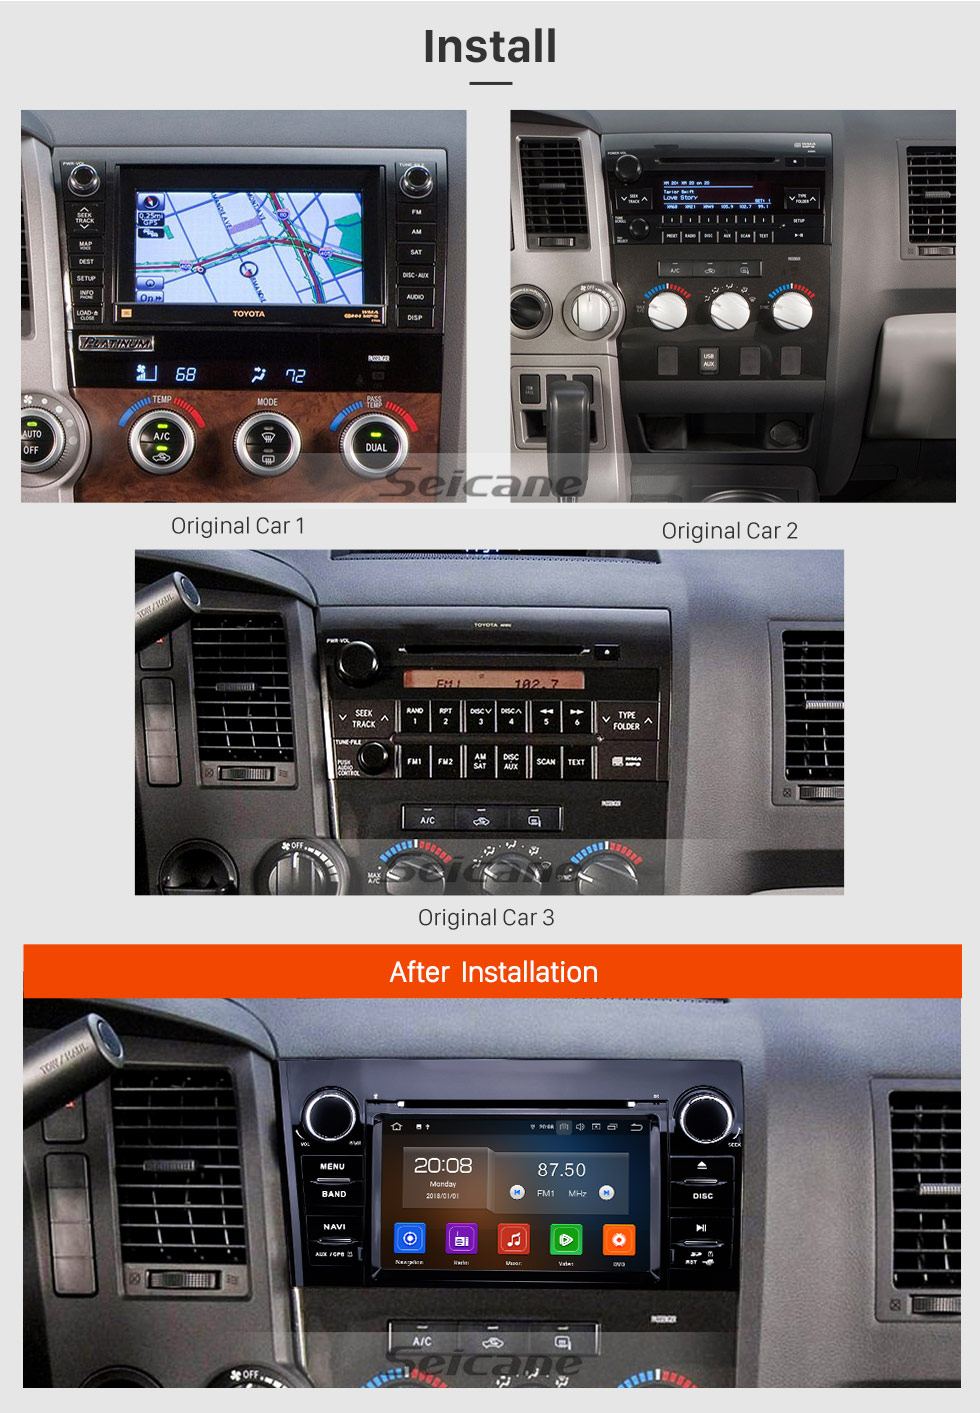 Seicane Radio de navegación GPS Android 9.0 de 7 pulgadas para 2008-2015 Toyota Sequoia / 2006-2013 Tundra Bluetooth HD Pantalla táctil Carplay USB AUX, compatible con video DVR 1080P